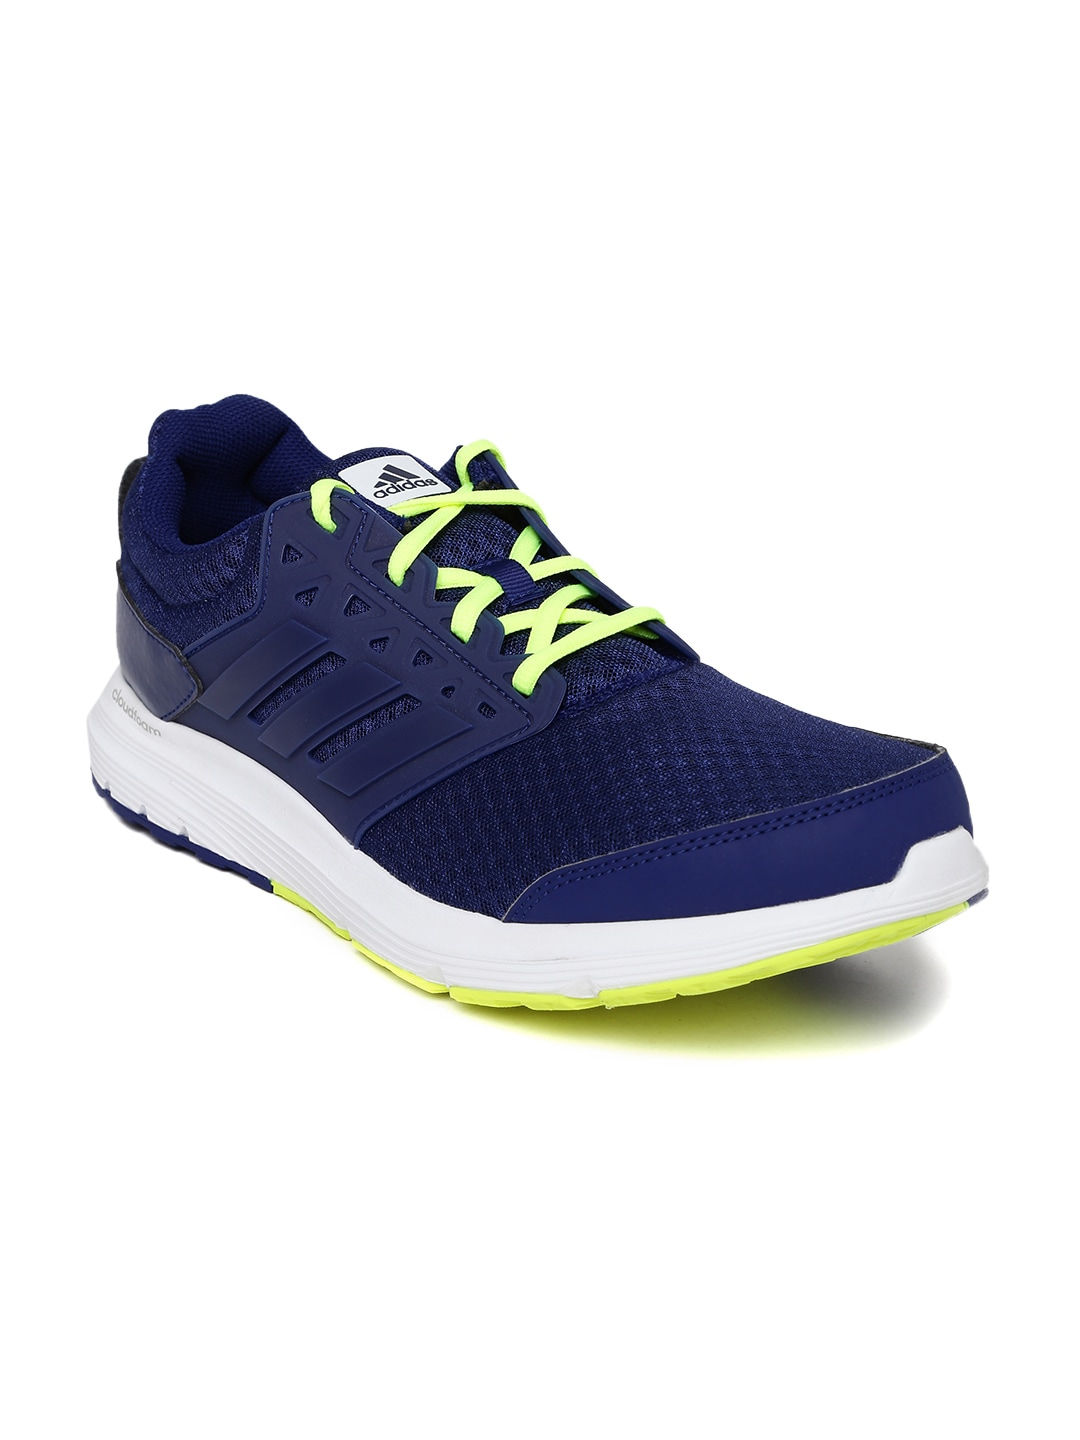 Adidas aq6544 Men Navy Galaxy 3m Running Shoes - Best Price in ... b66d4c7b3